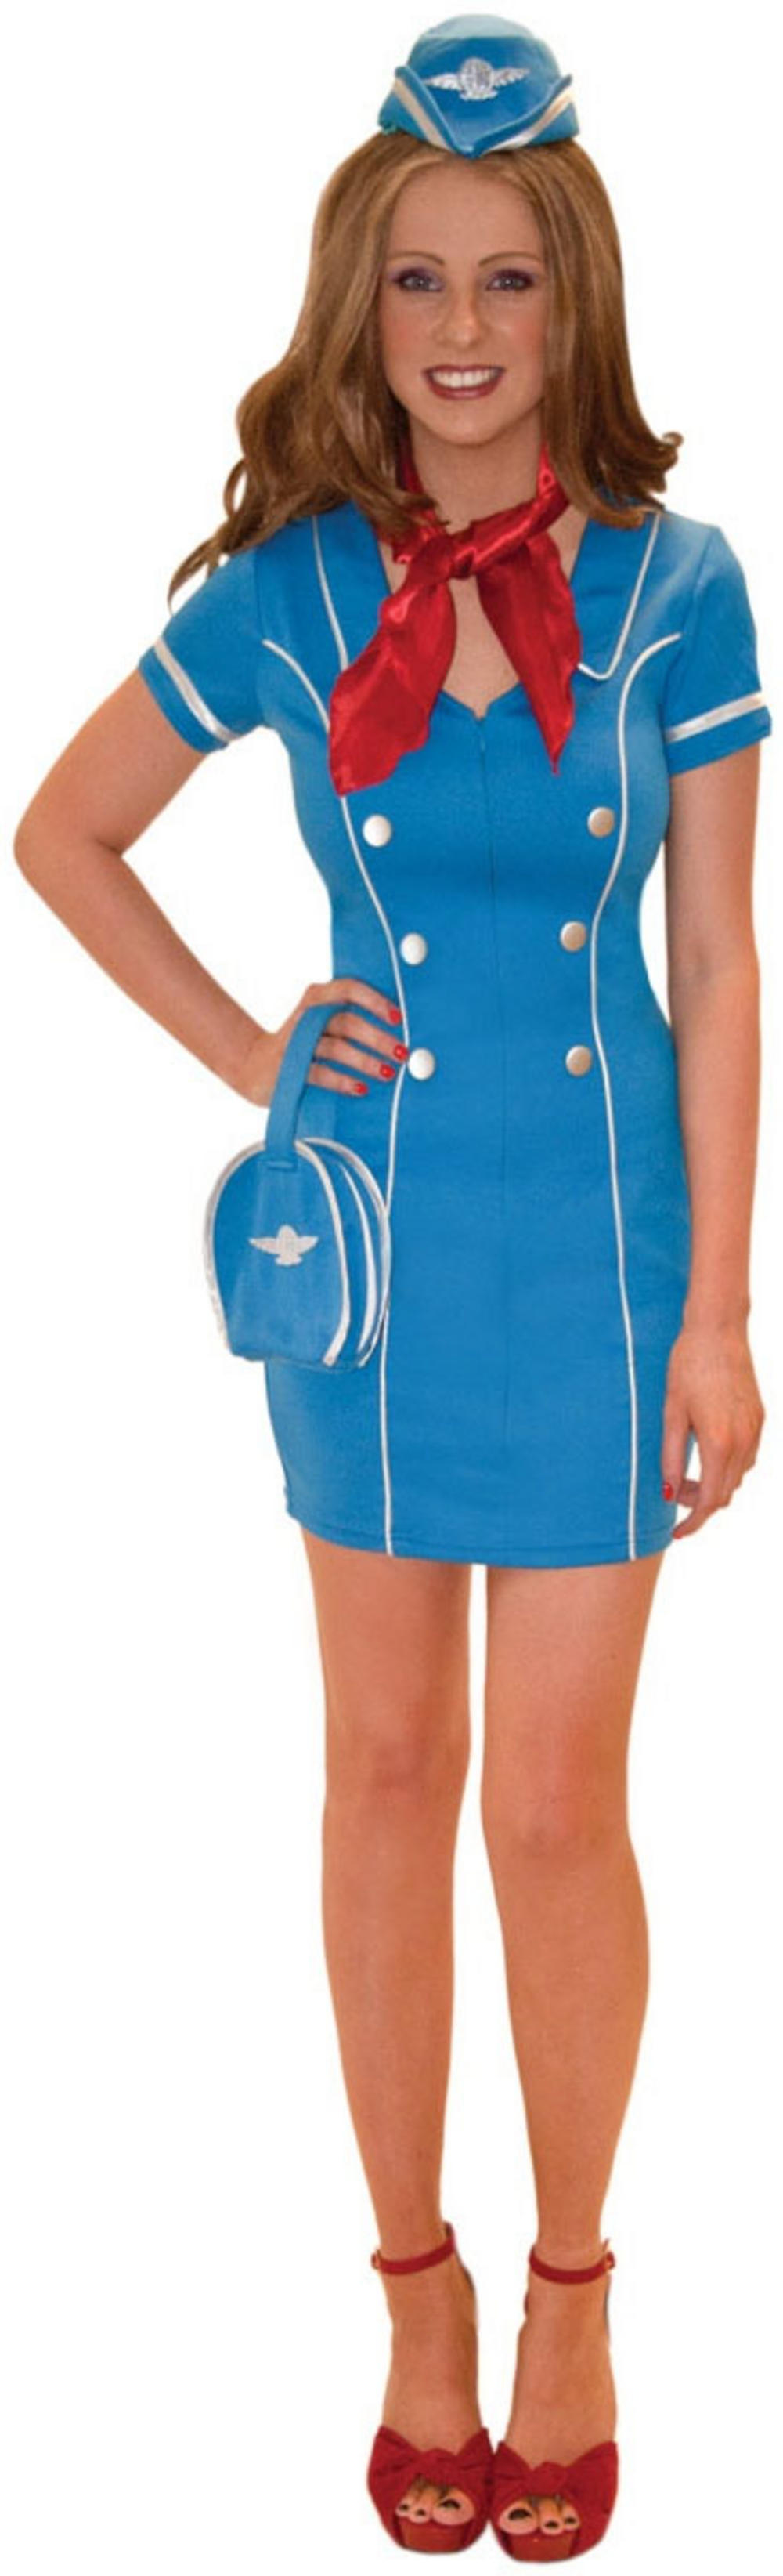 Frequent Flyer Air Hostess Costume